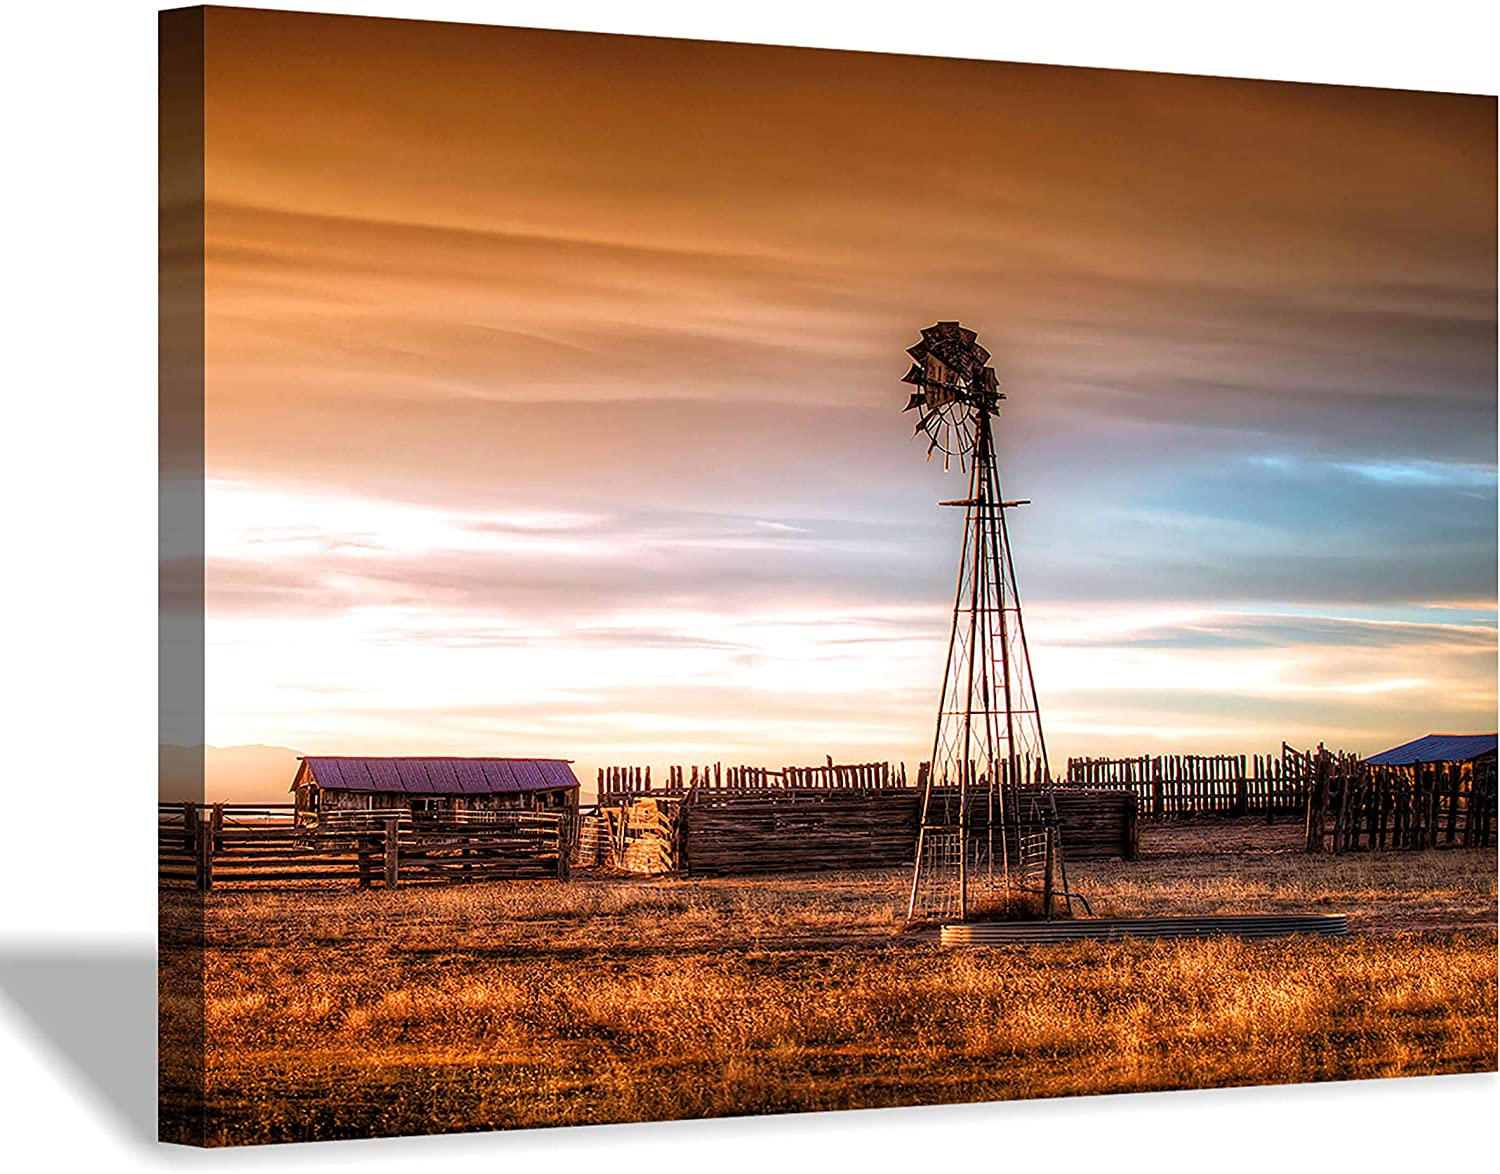 Hardy Gallery Windmill Artwork Rustic Landscape Picture: Farmhouse Painting Wall Art Print on Canvas for Living Room (45'' x 30'' x 1 Panel)